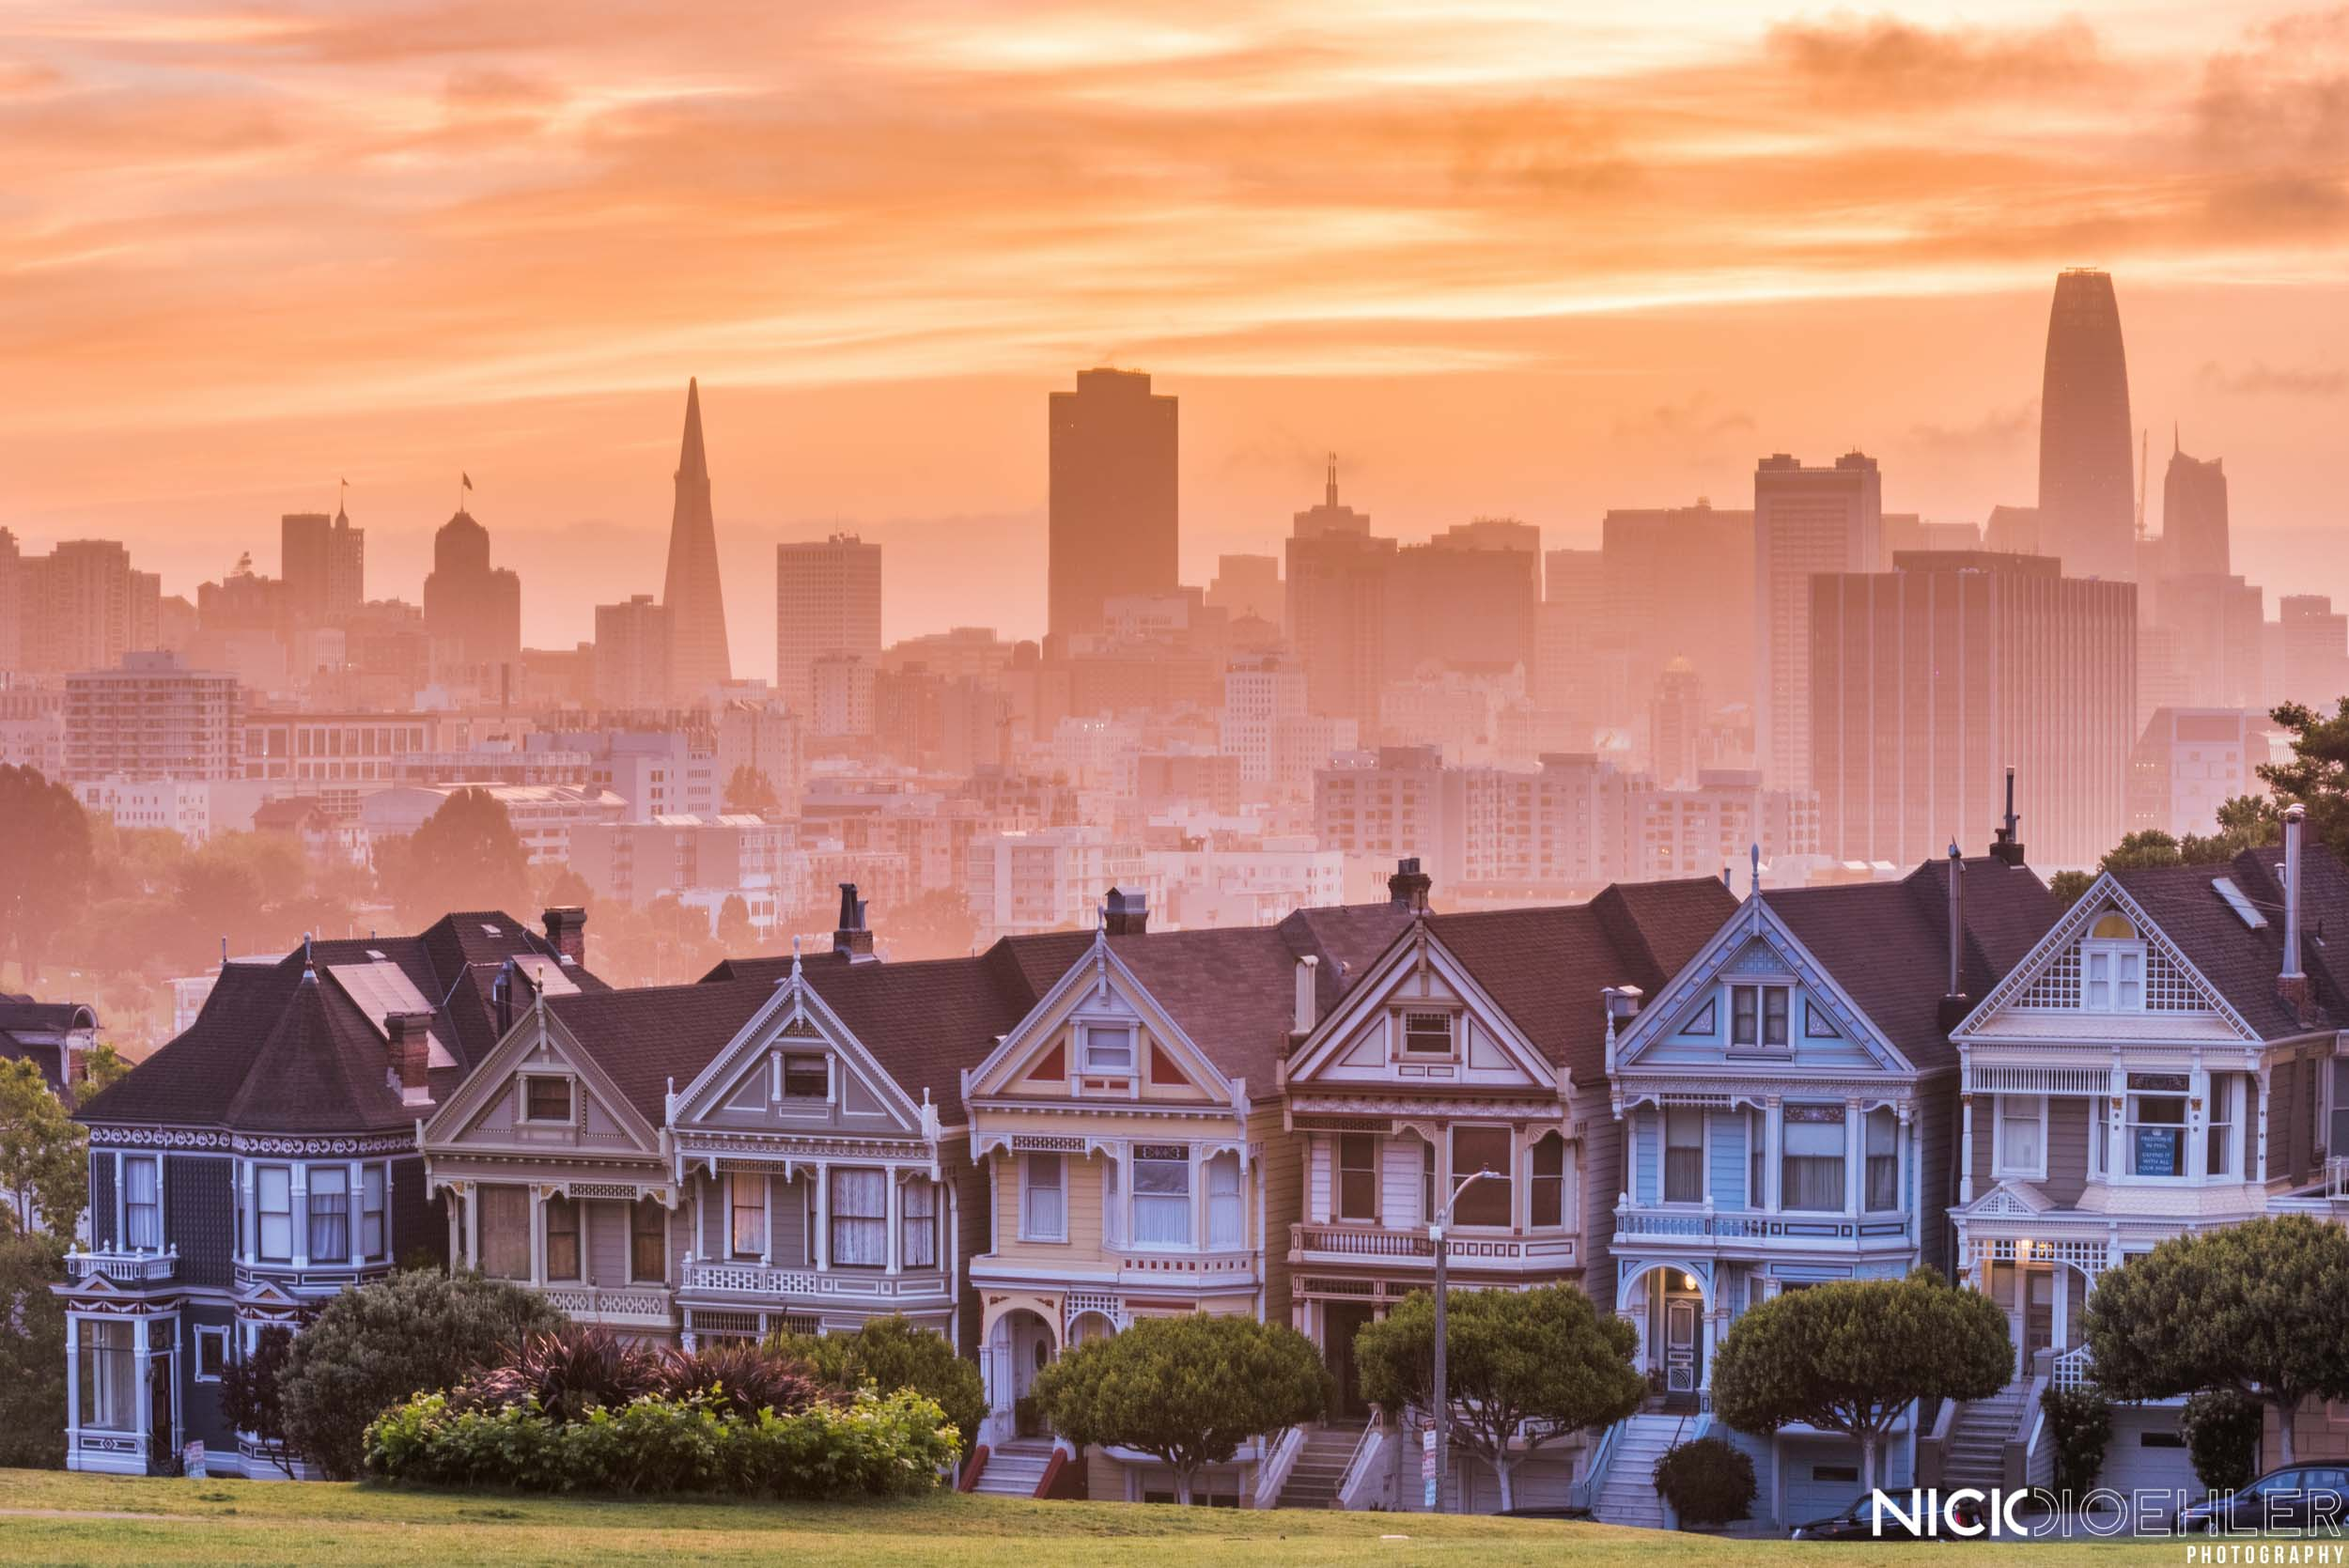 San Francisco: Beautiful skyline behind the famous Painted Ladies.